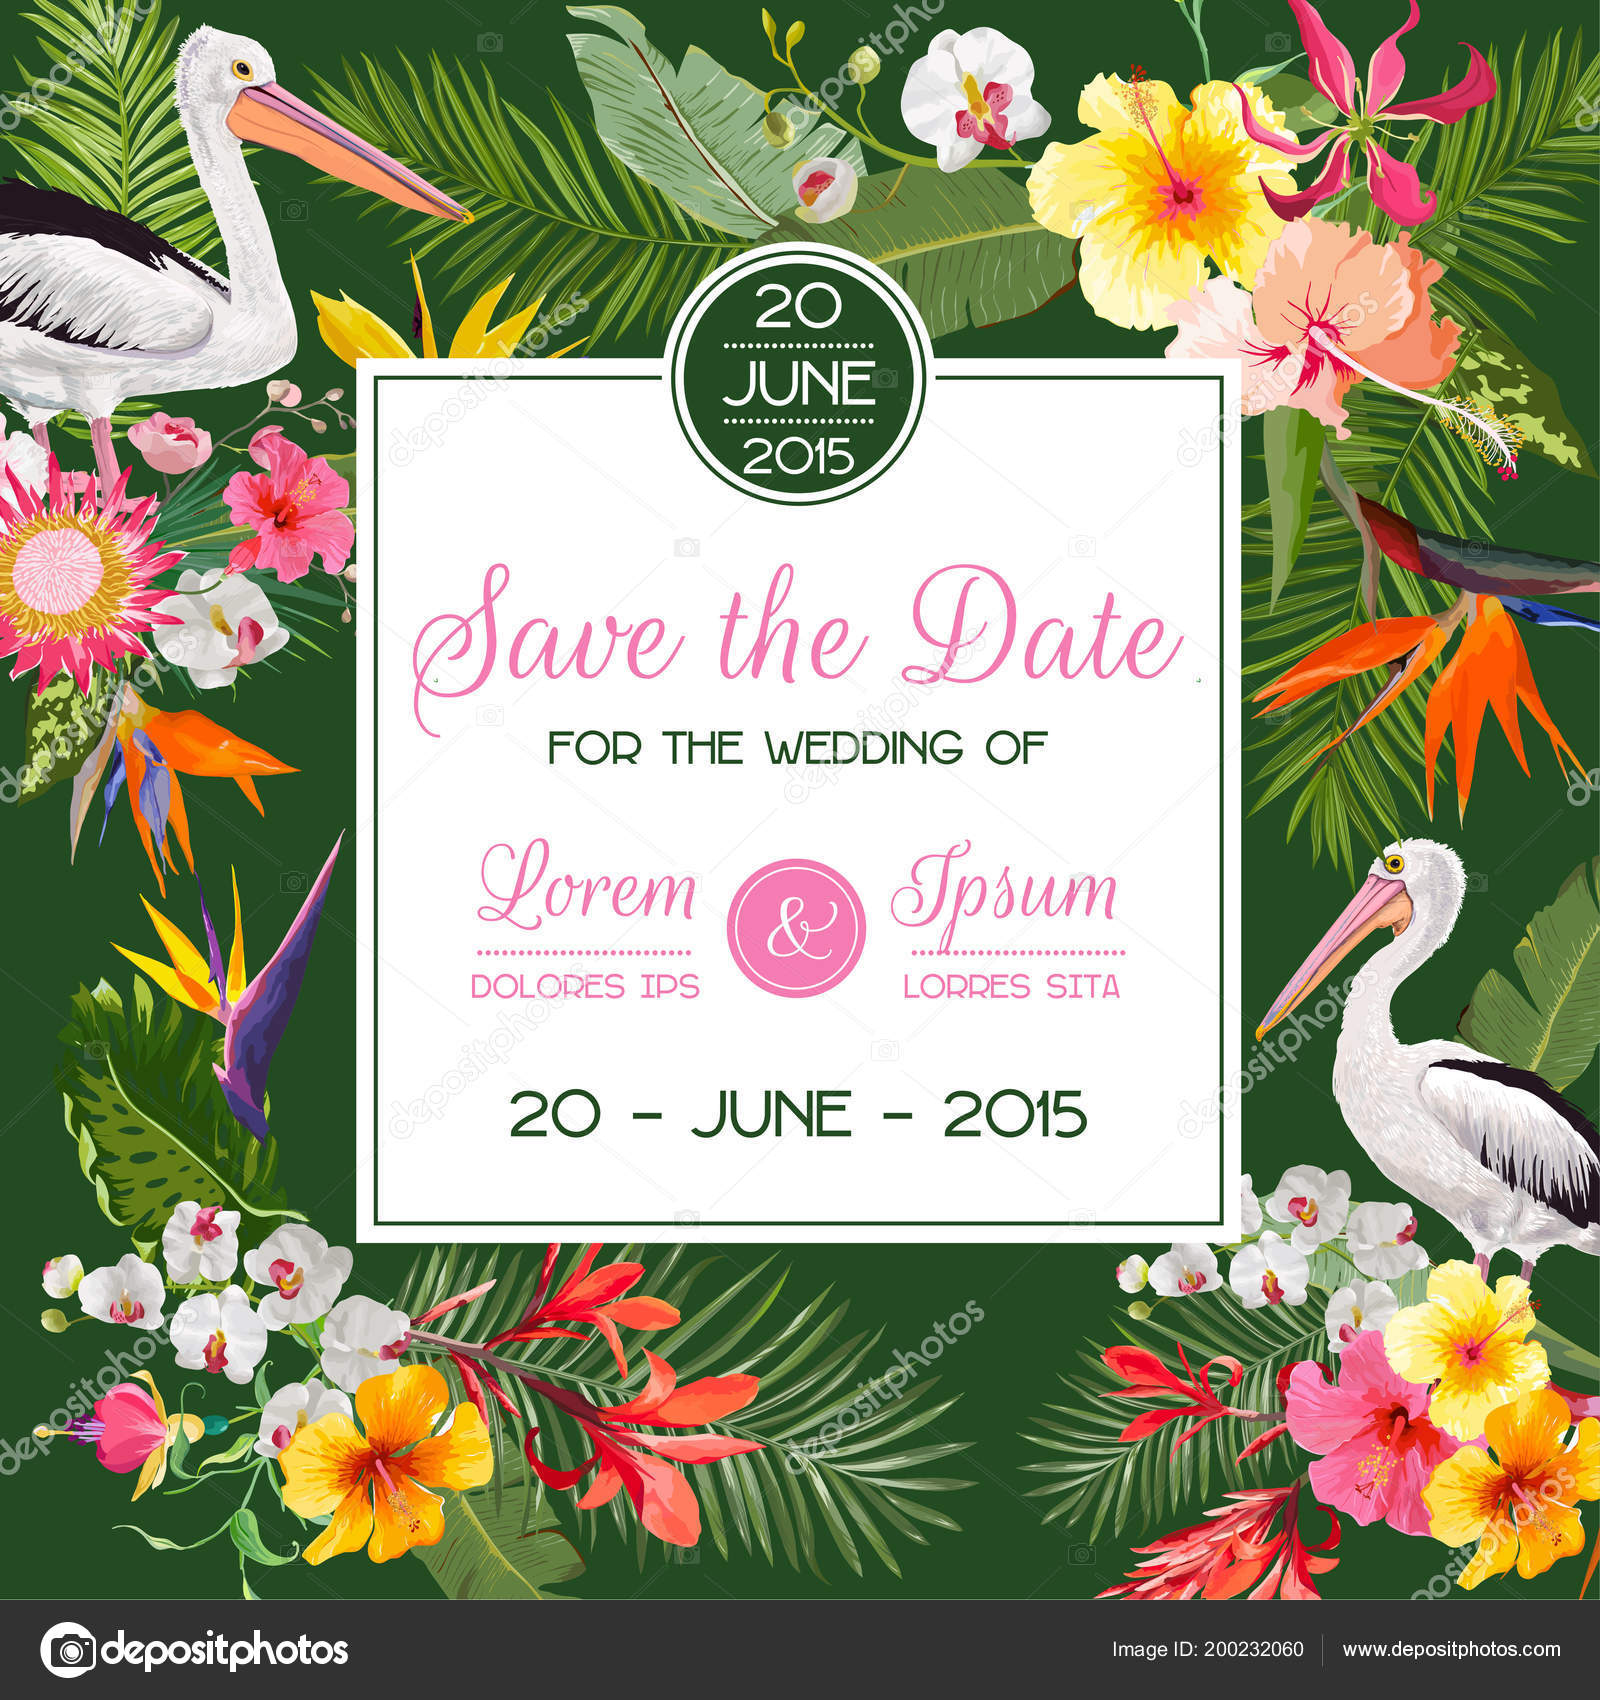 Save the date card with exotic flowers and birds floral wedding floral wedding invitation template with pelicans tropical postcard vector illustration vetor por woodhouse stopboris Choice Image